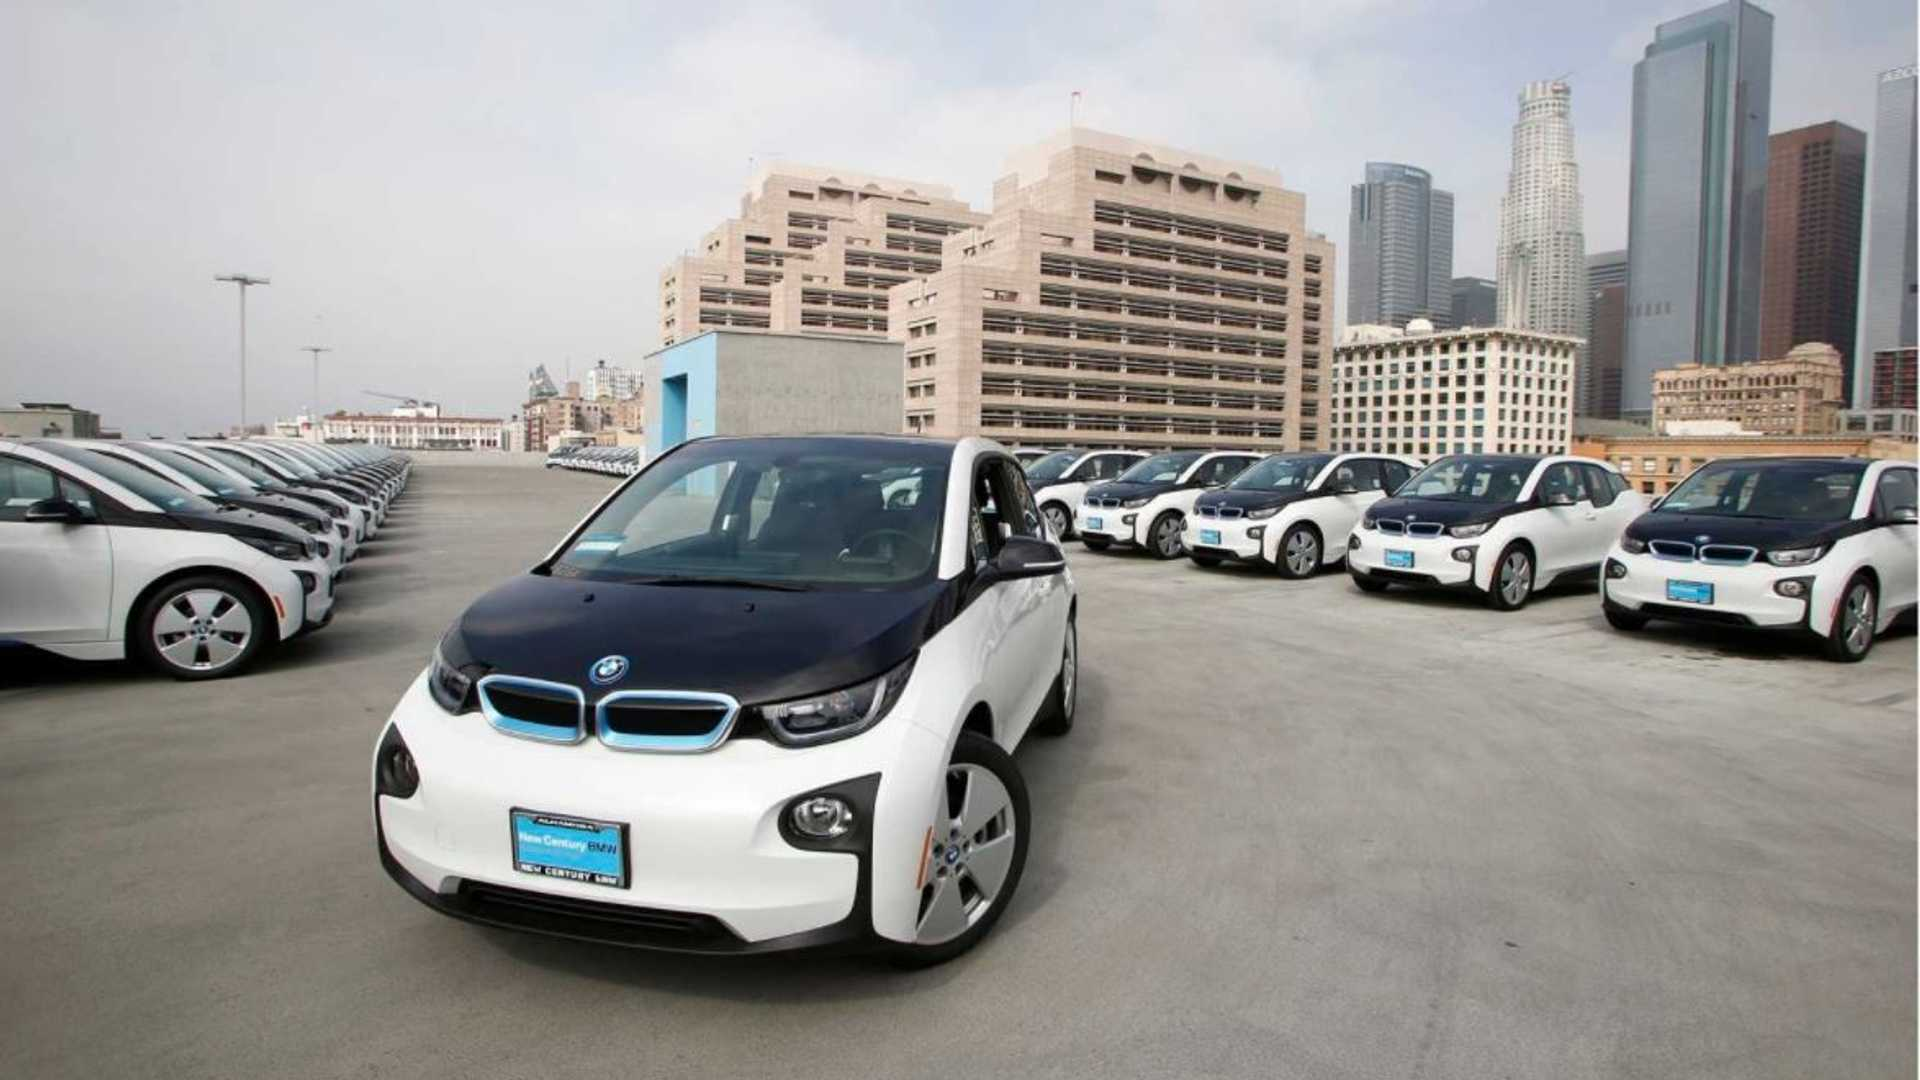 Los Angeles Police Department Is Selling Its Fleet Of Bmw I3 Vehicles